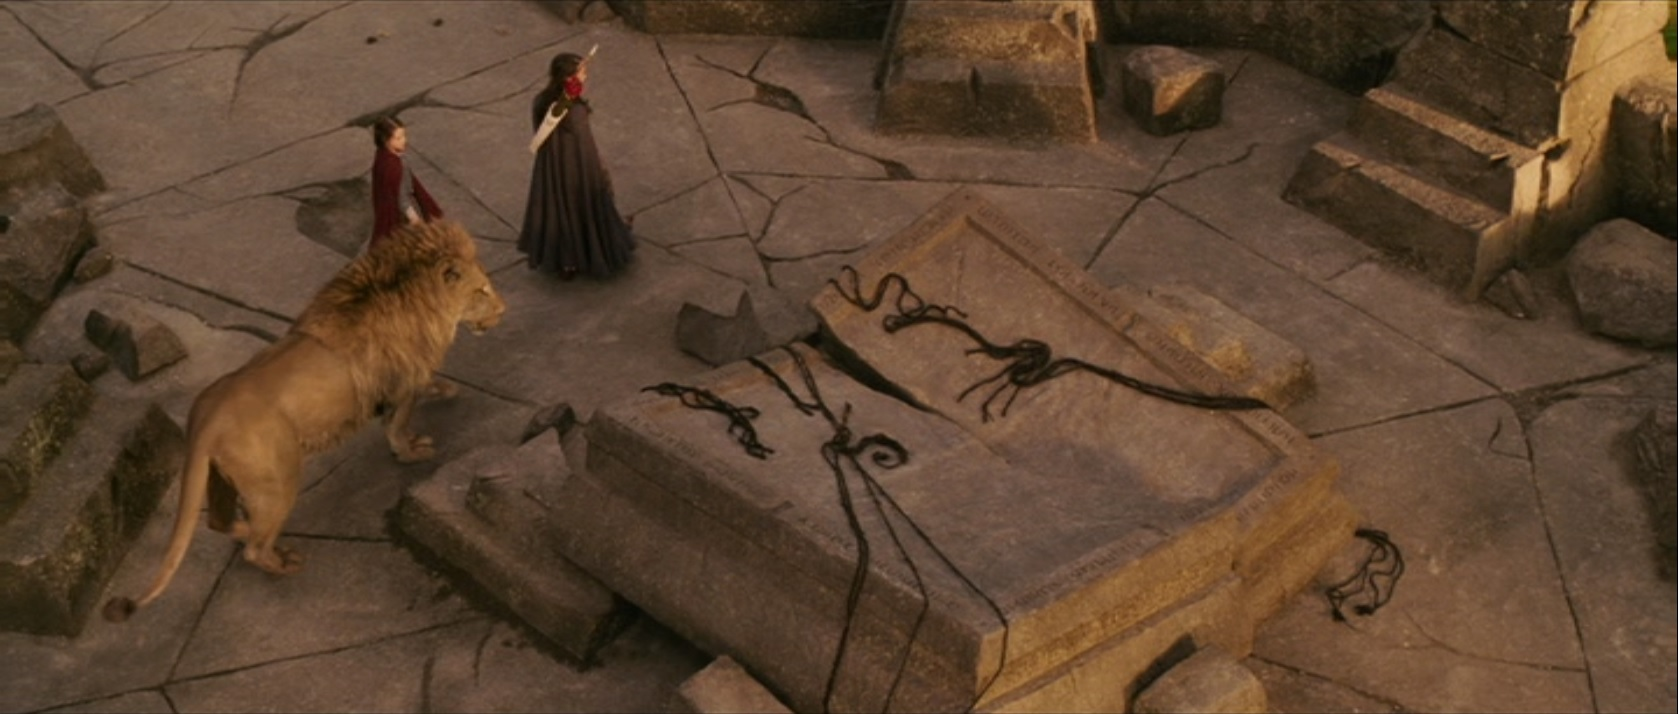 Stone Table | The Chronicles of Narnia Wiki | FANDOM powered by Wikia for Narnia Aslan Quotes  143gtk